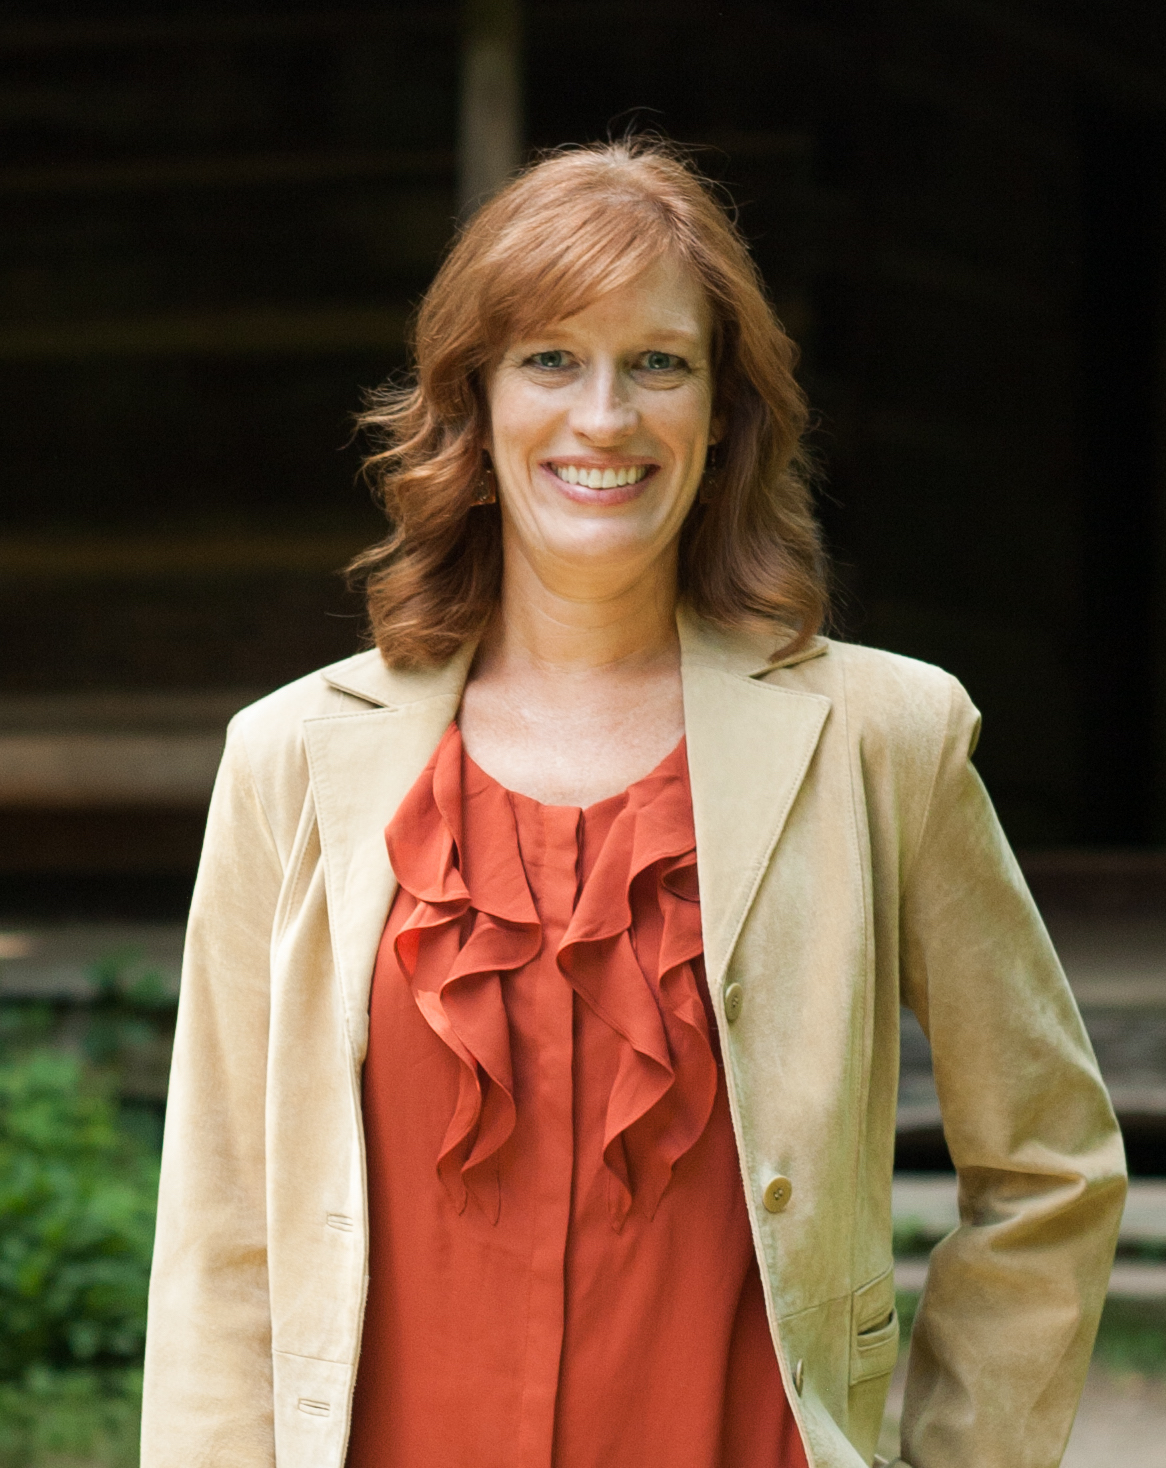 Dr. Melissa Booth